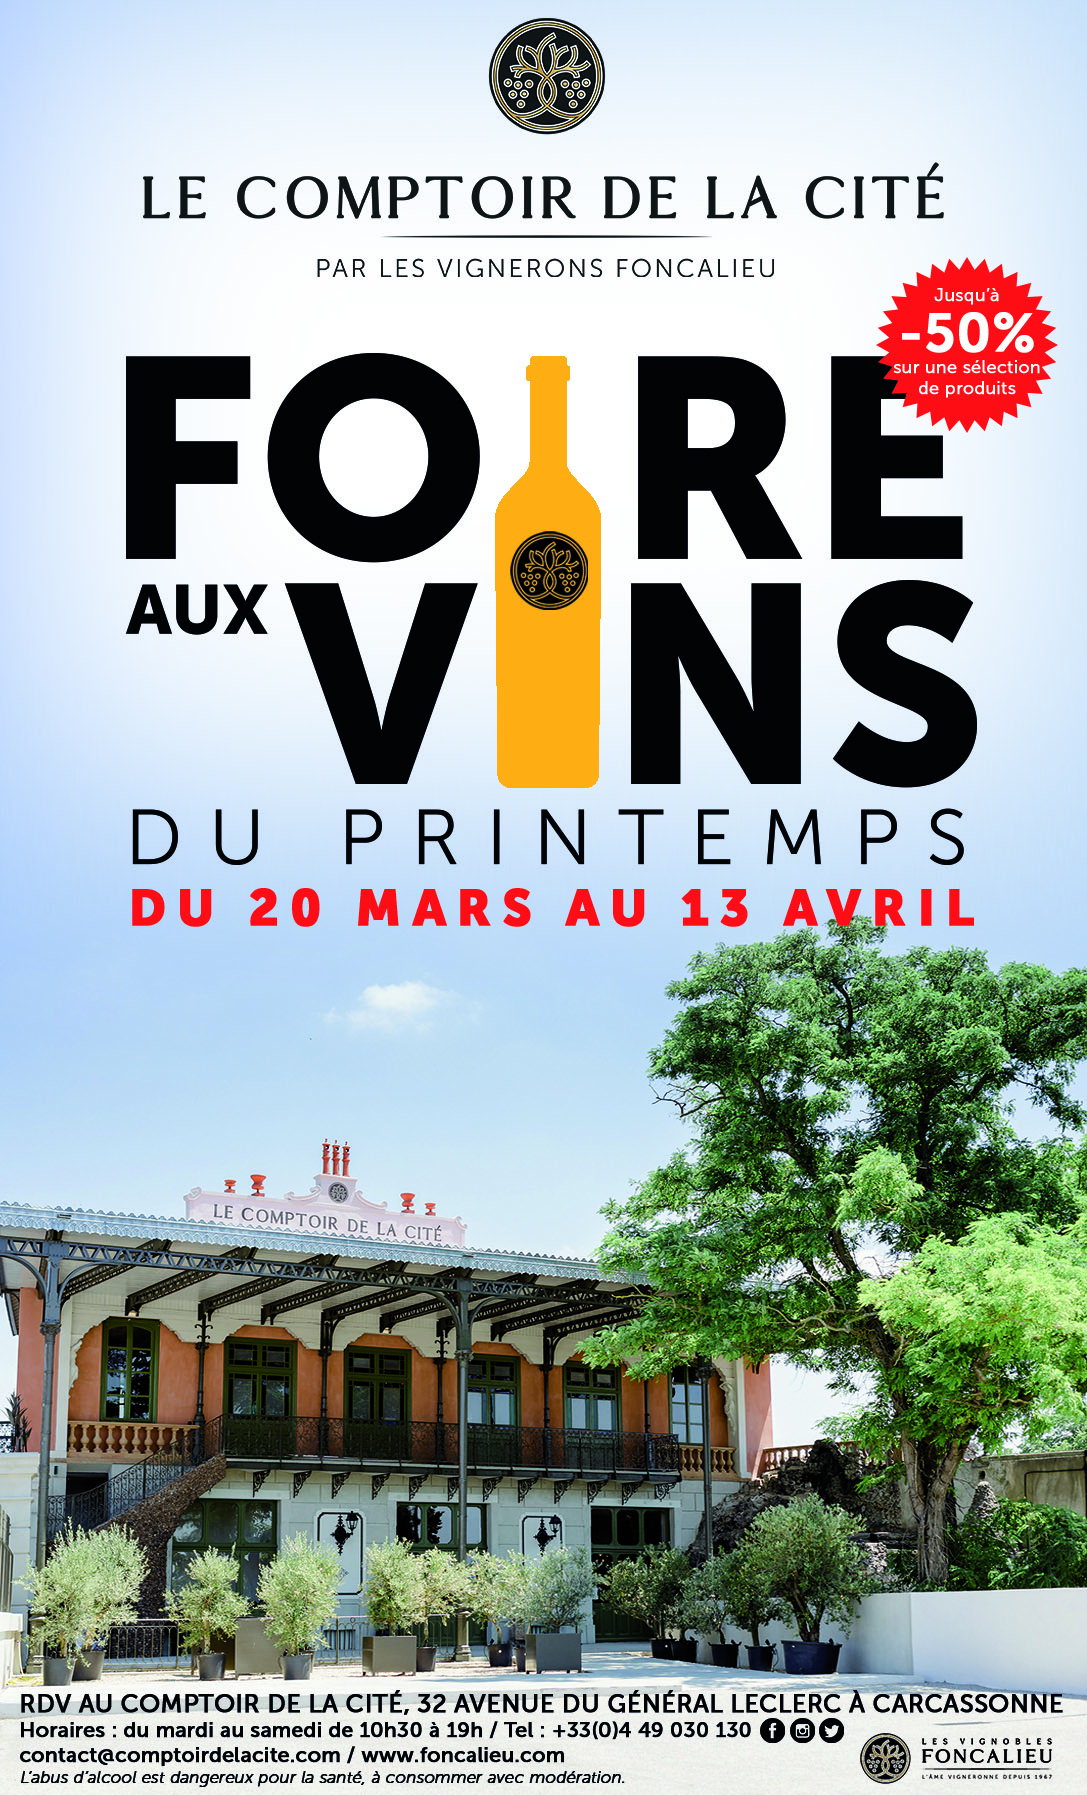 SPRING WINE FAIR AT LE COMPTOIR DE LA CITE